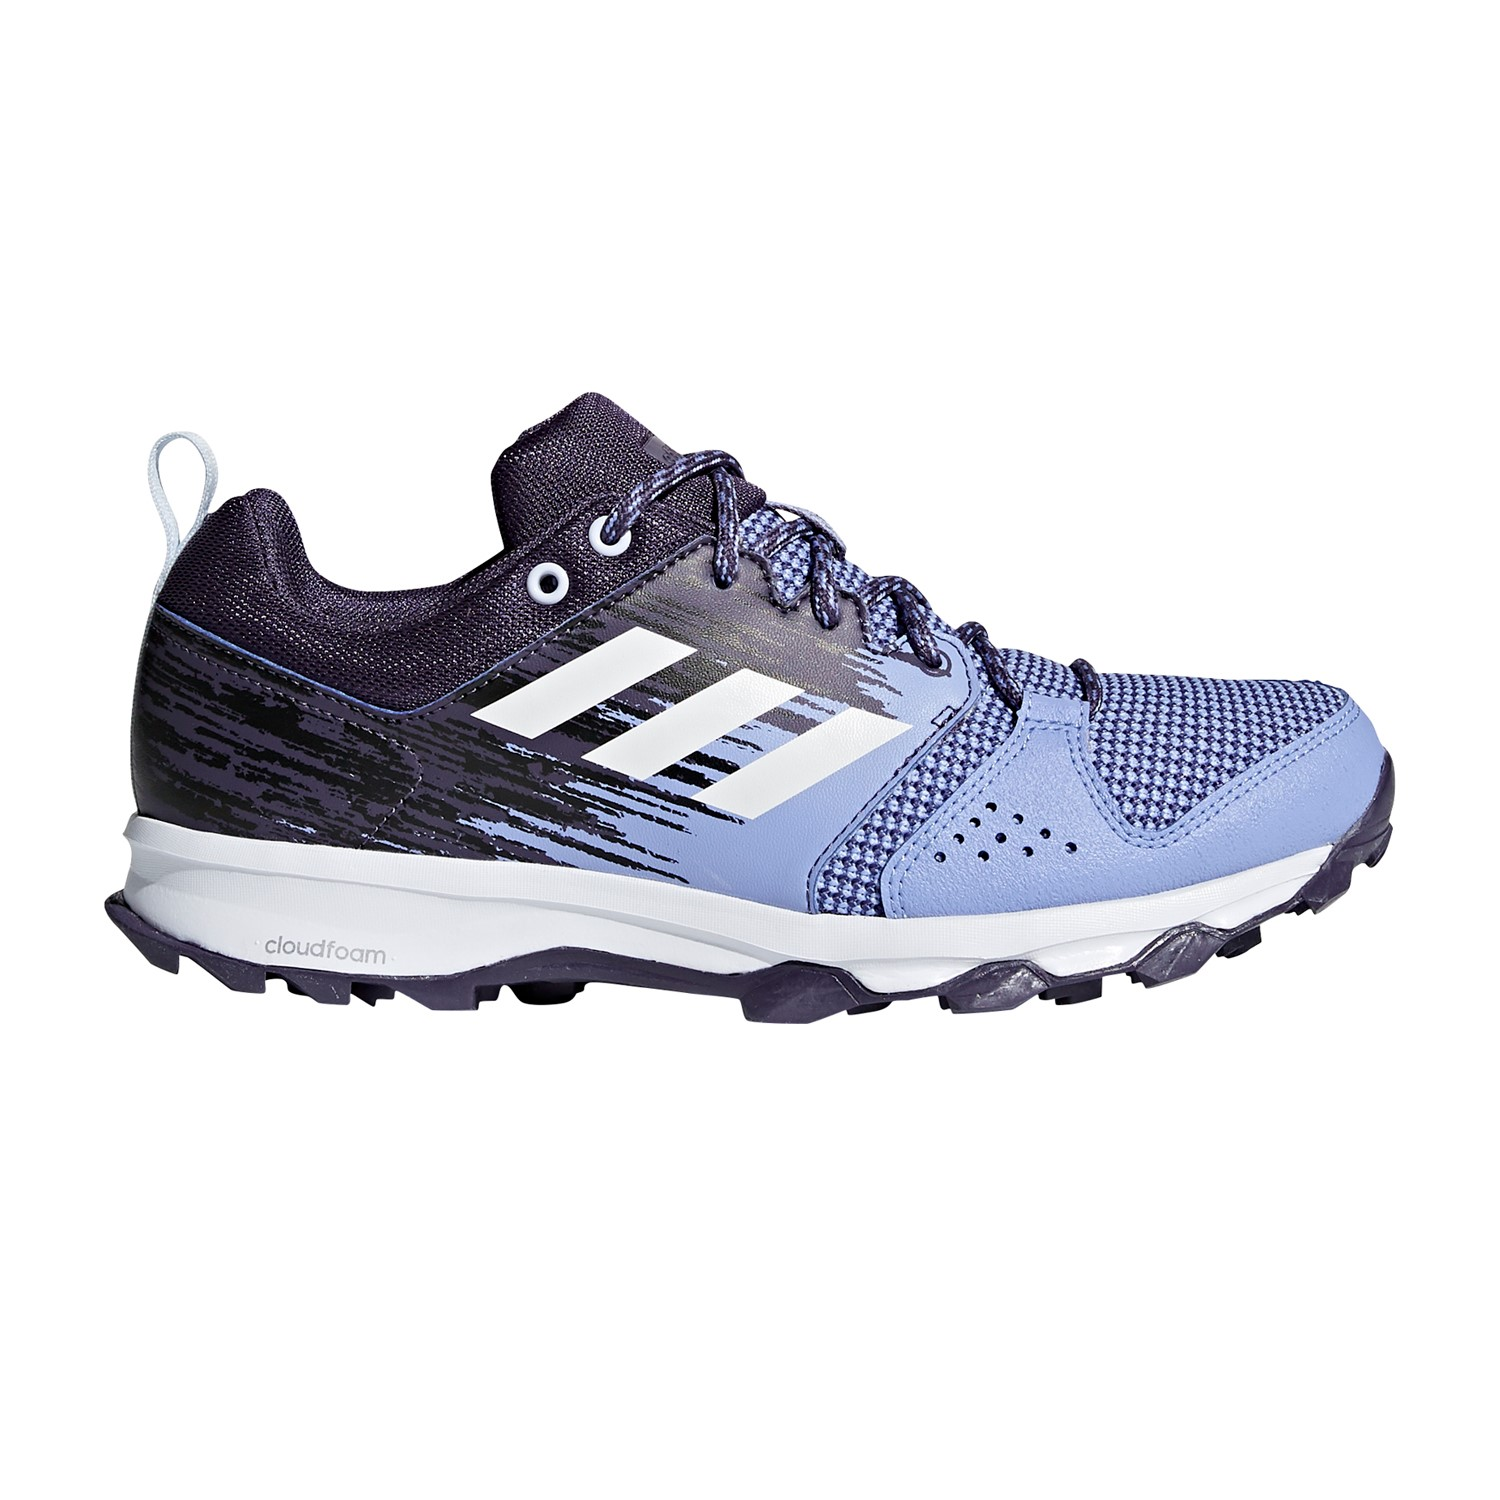 best loved 5fea5 965f0 Adidas Galaxy Trail - Womens Trail Running Shoes - Chalk PurpleOrchard  TintTrace